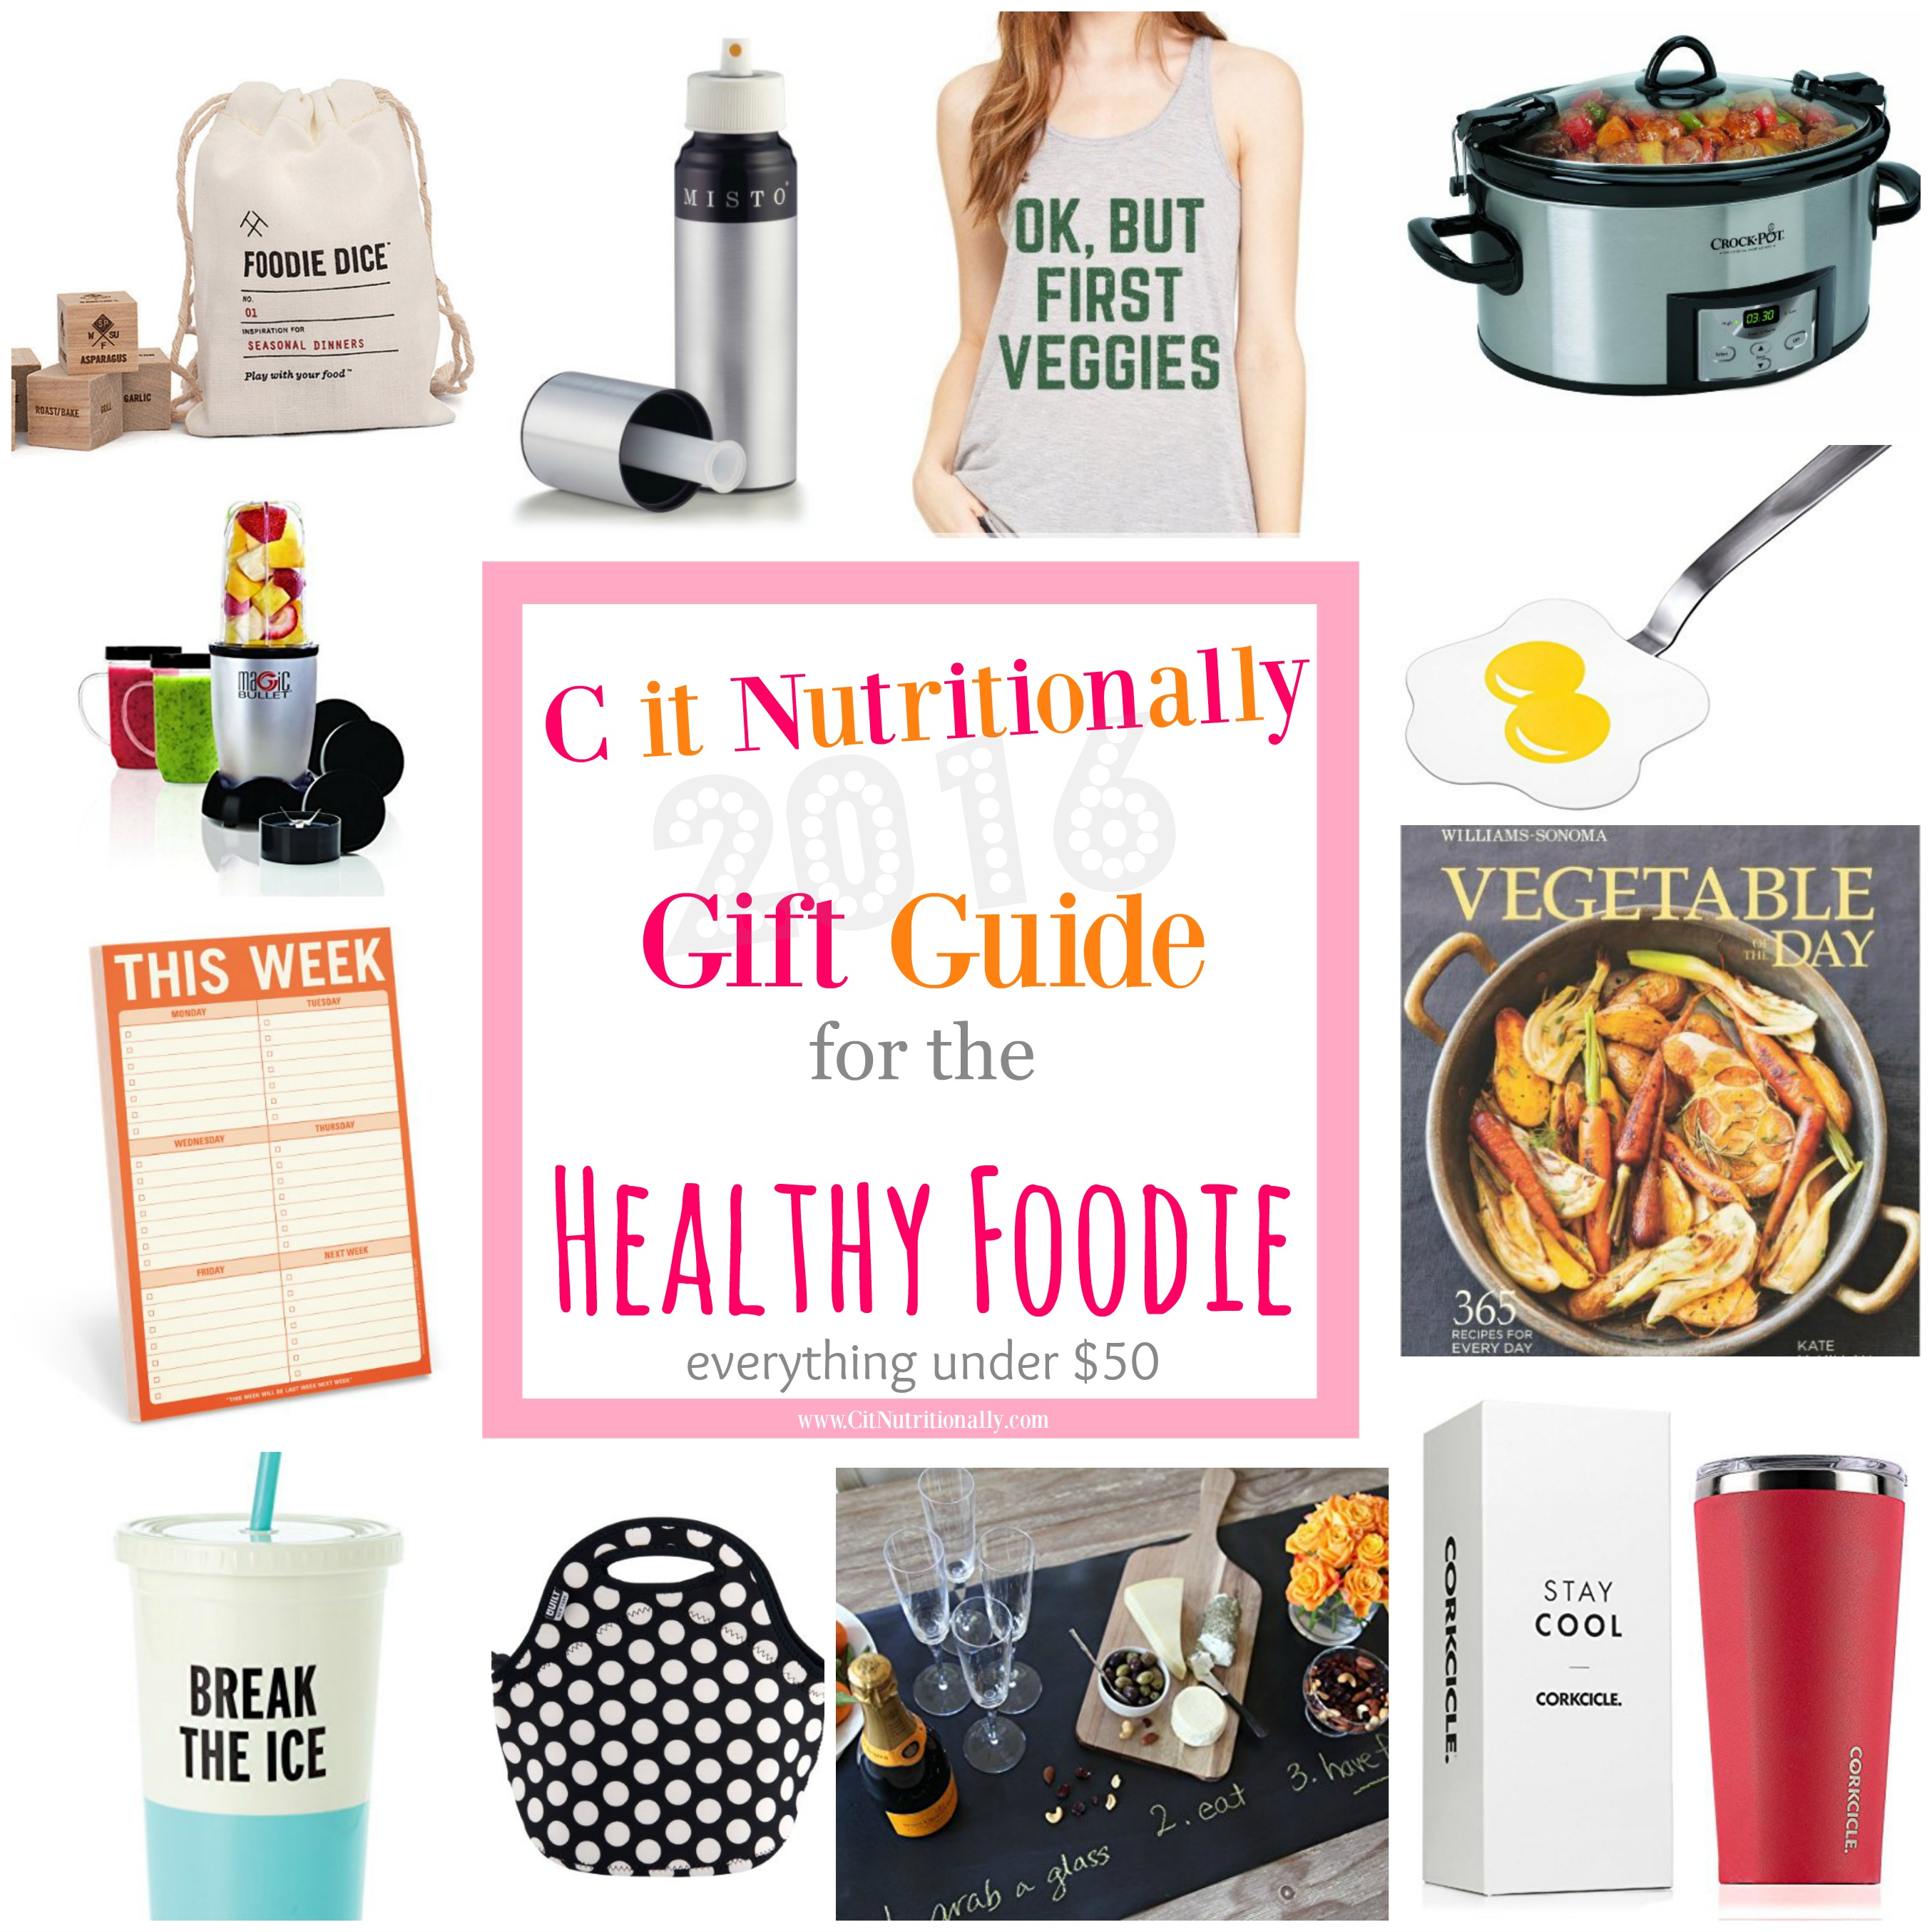 25 Gifts for the Healthy Foodie Under $50 | C it Nutritionally